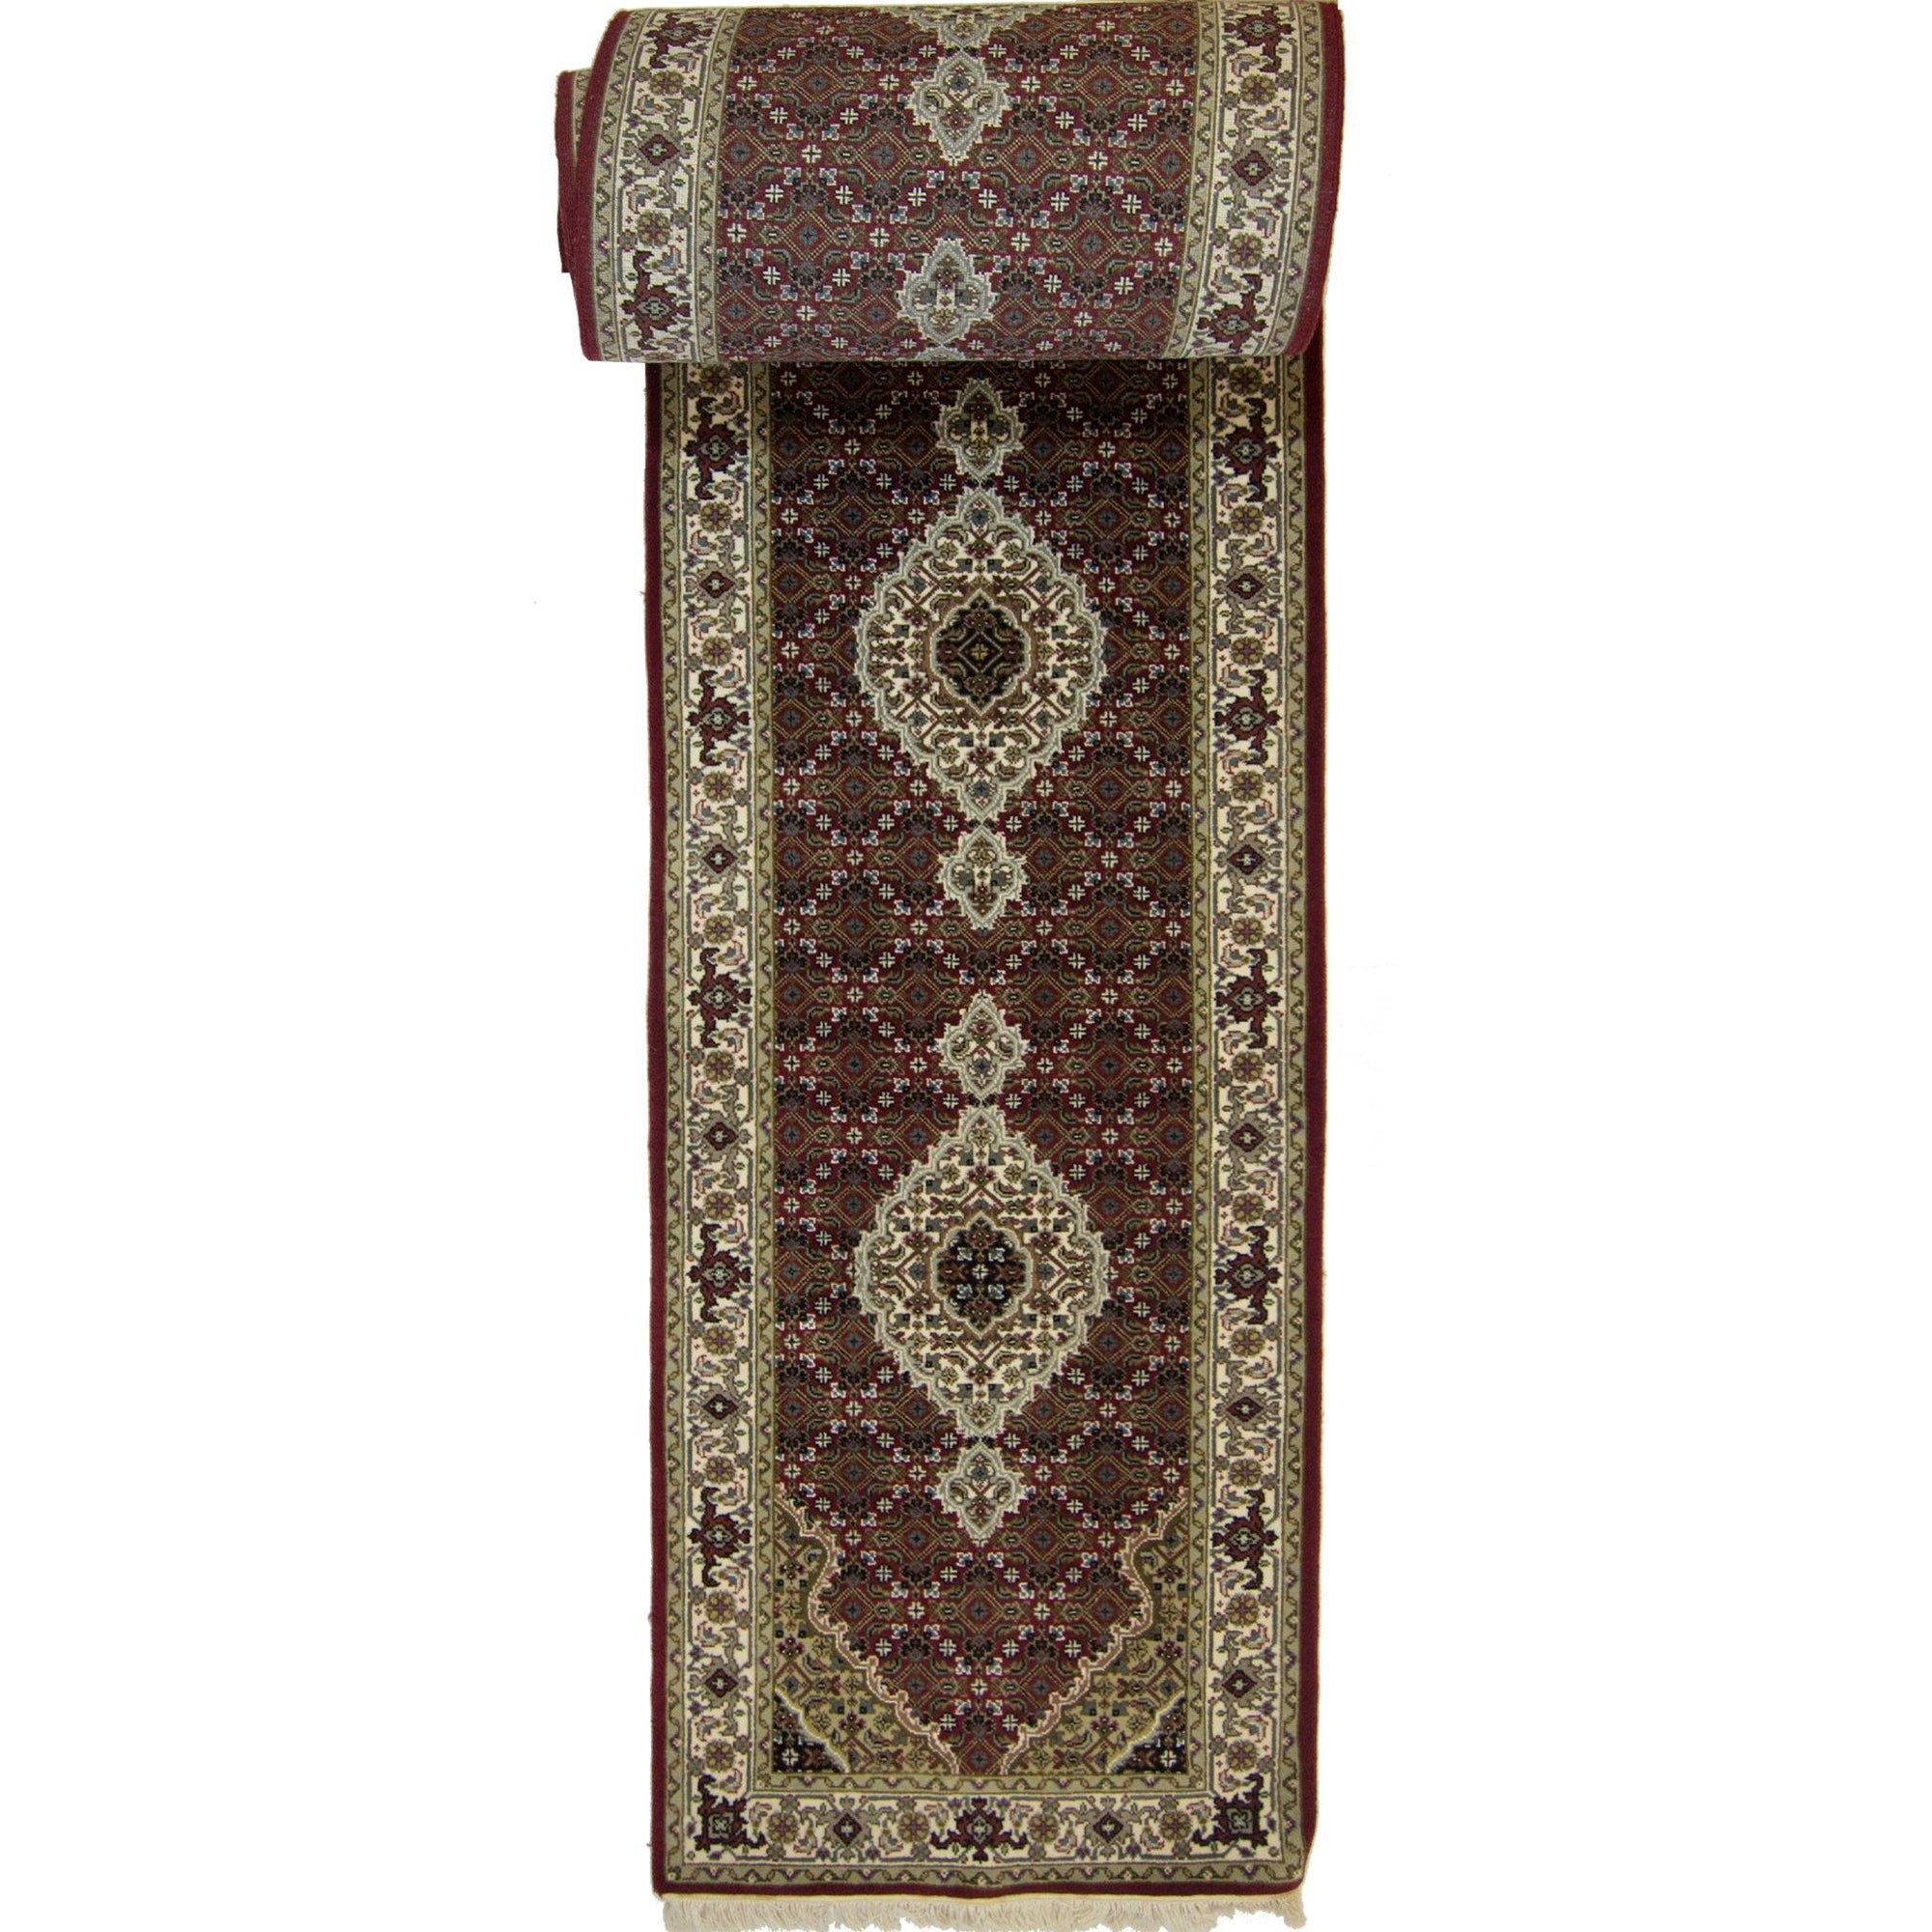 Super Fine Hand-knotted Wool and Silk Tabriz - Mahi Runner 85 cm x 802 cm Persian-Rug | House-of-Haghi | NewMarket | Auckland | NZ | Handmade Persian Rugs | Hand Knotted Persian Rugs